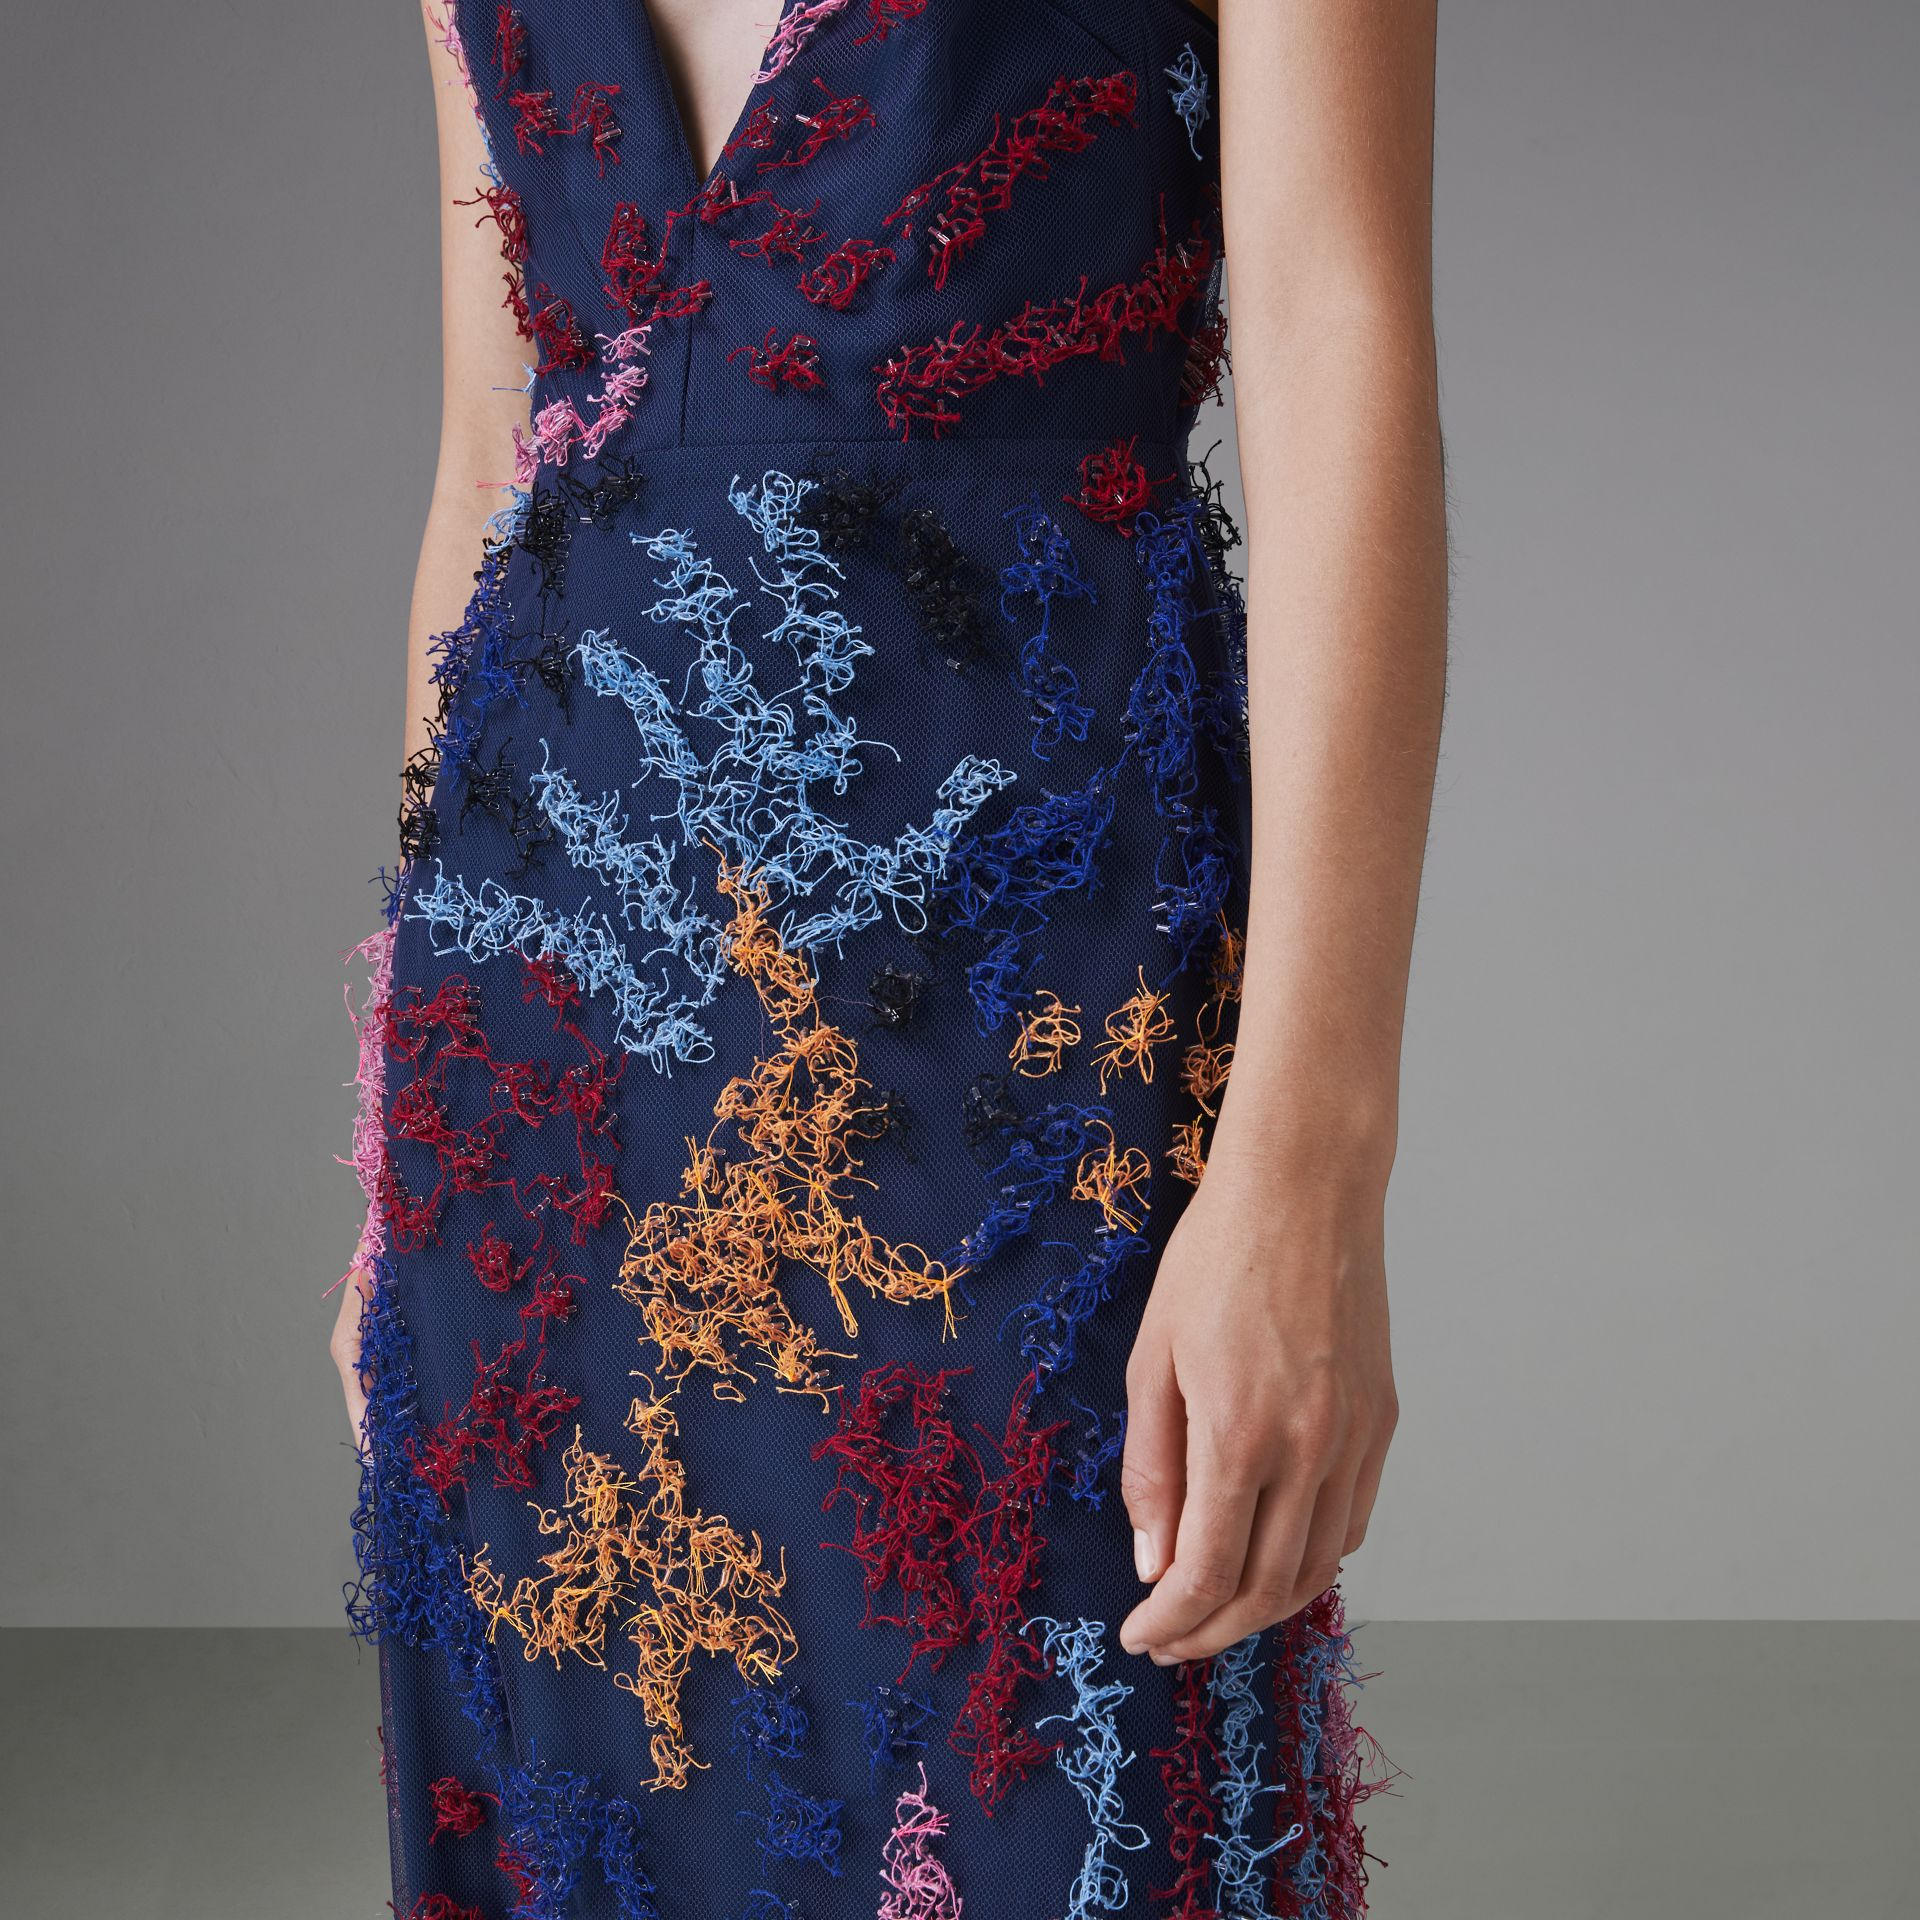 Hand-beaded Sleeveless Dress in Multi -bright Pink - Women | Burberry Singapore - gallery image 4